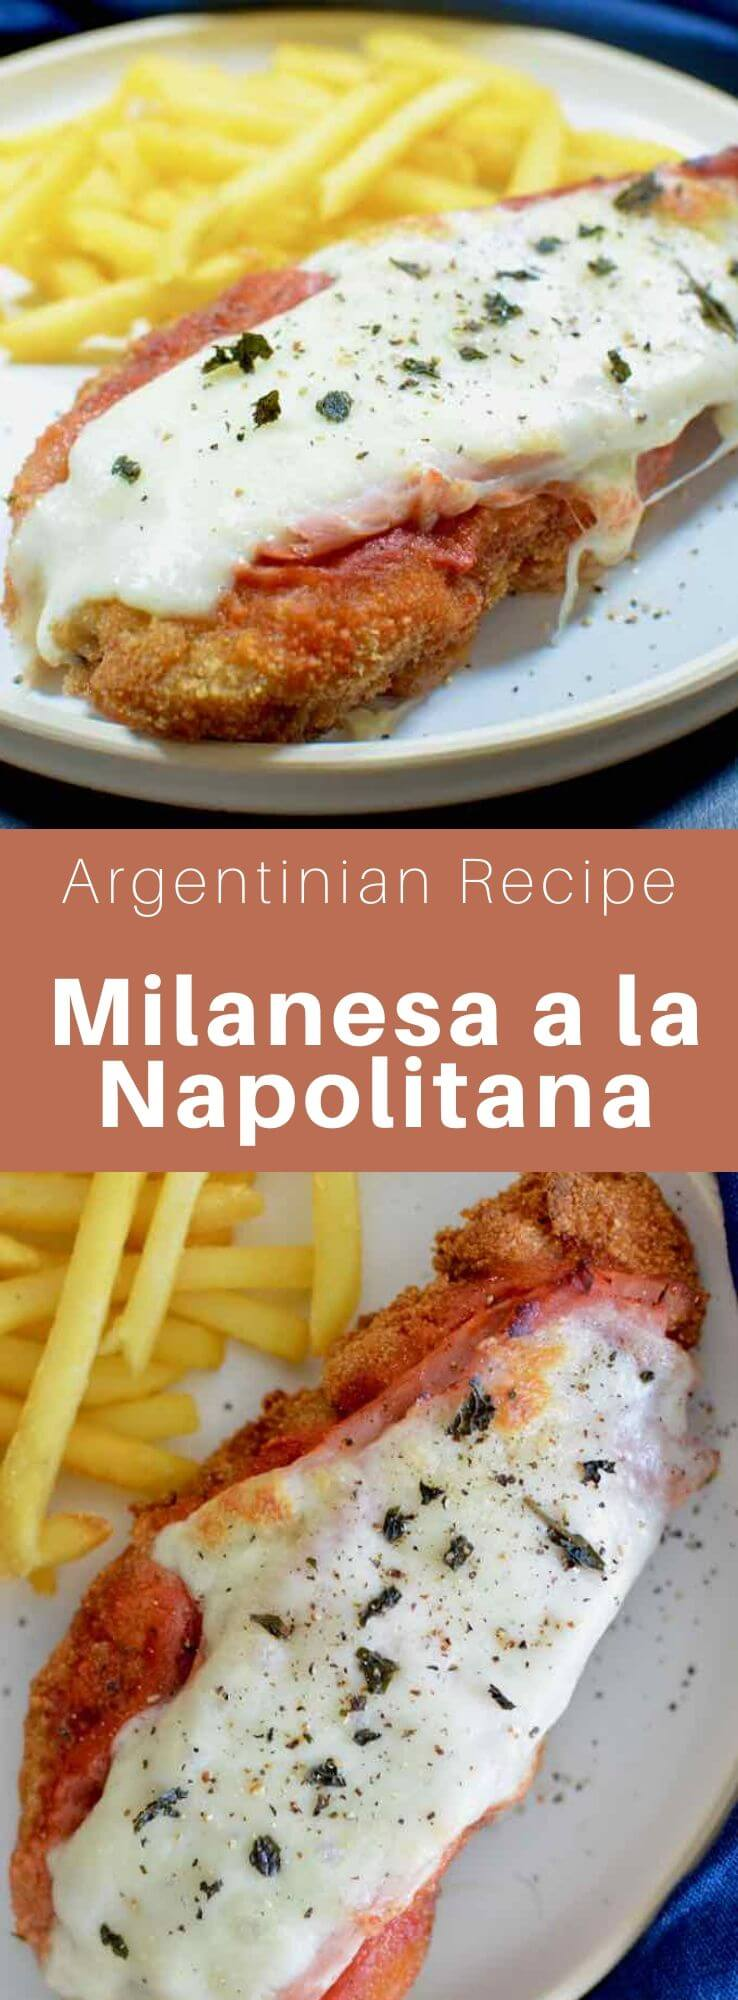 Milanesa a la napolitana is a typical dish of Argentinian cuisine consisting of fried breaded beef topped with tomato sauce, ham and mozzarella. #Argentine #ArgentinianRecipe #ArgentinianFood #ArgentinianCuisine #WorldCuisine #196flavors